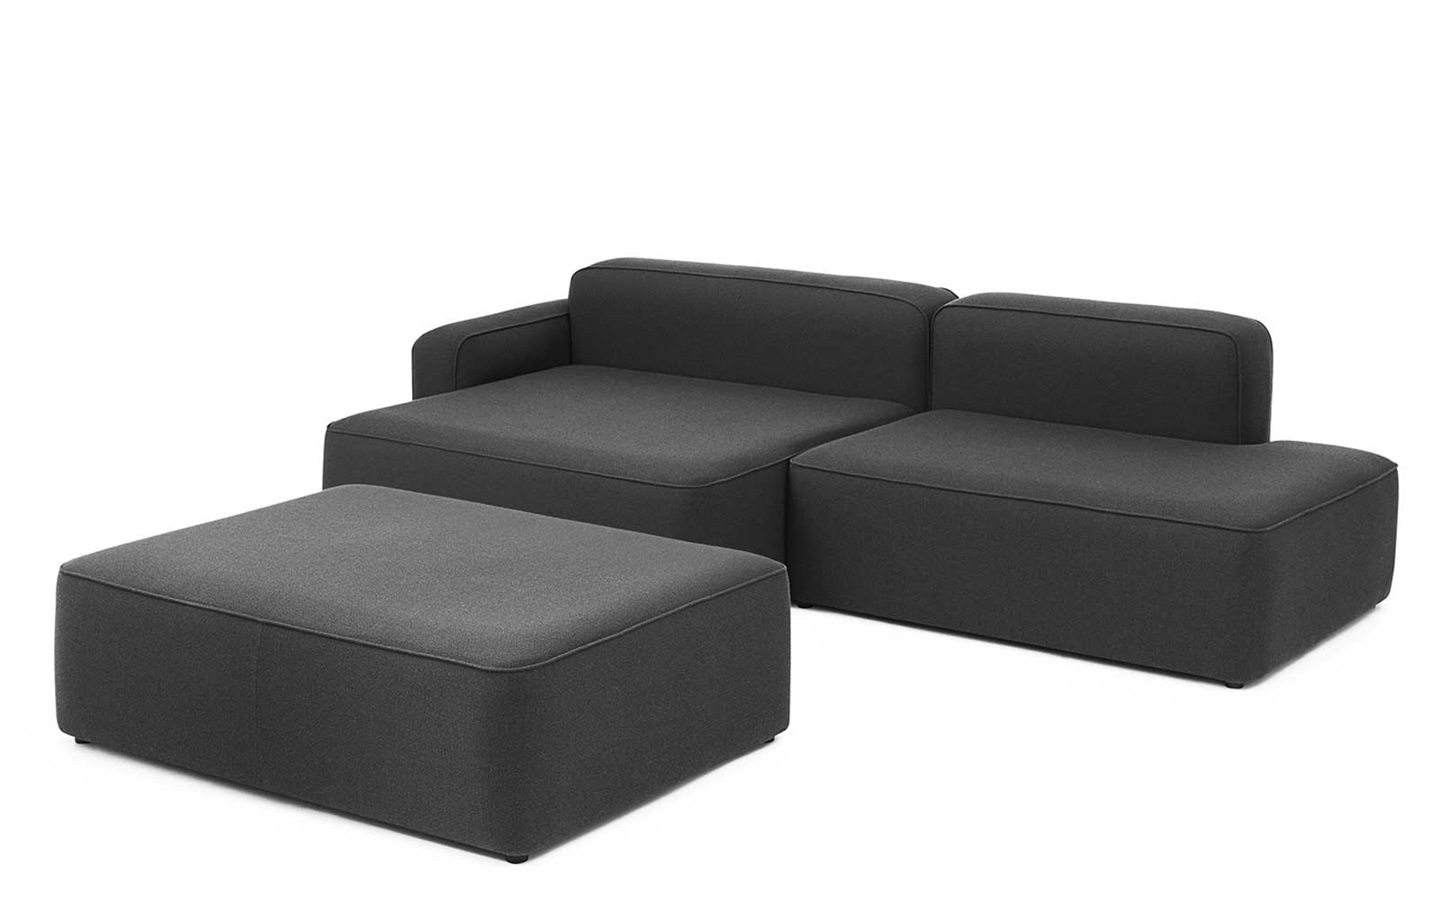 Sofa modular chaise longue sofa the honoroak for Oferta sofa cama chaise longue